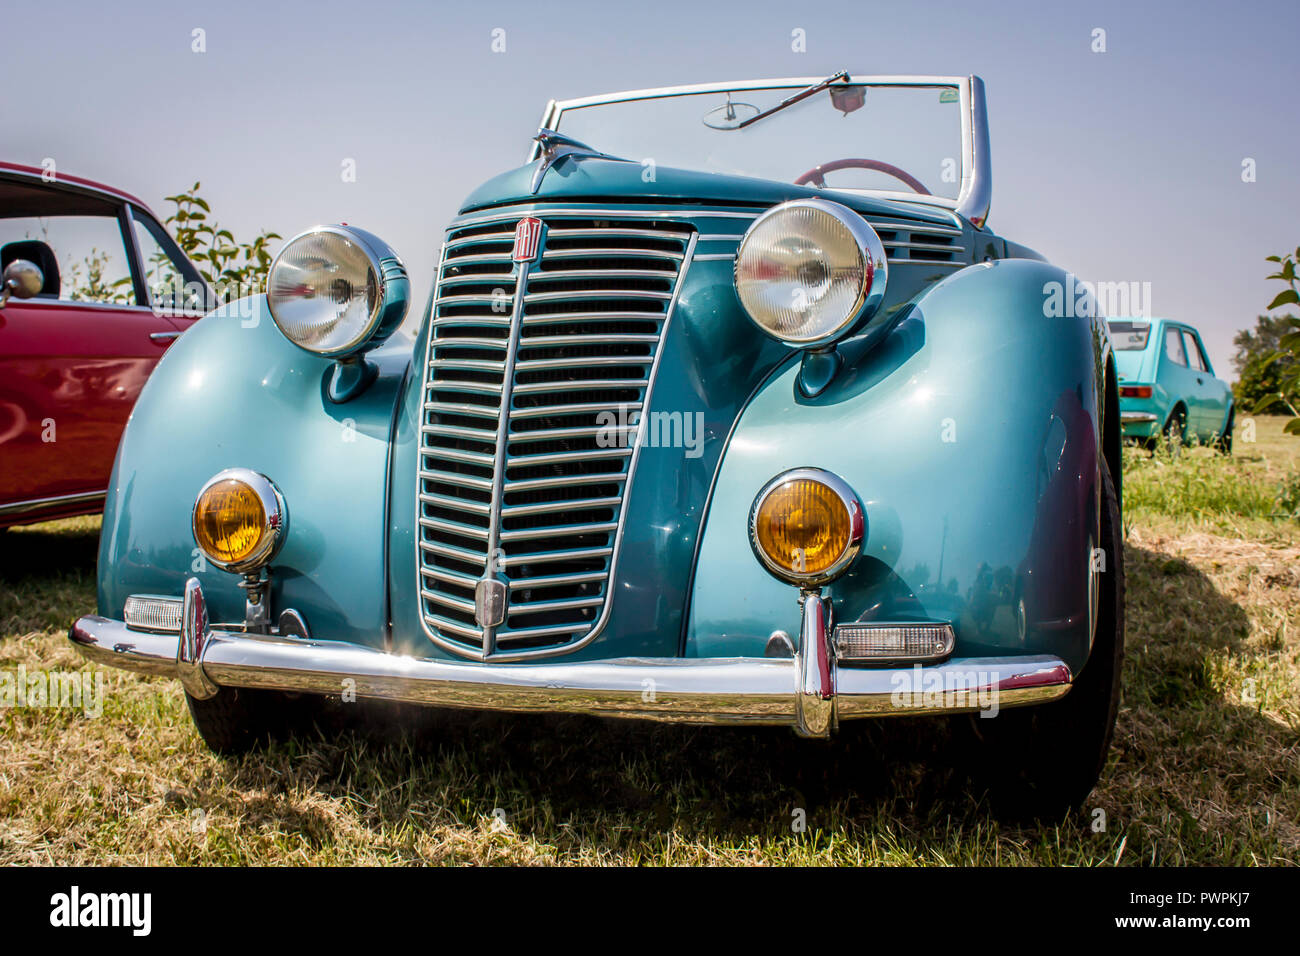 Fantastic Fiat, the Italian car era, exposed during a rally in the sunlight. Front view. - Stock Image